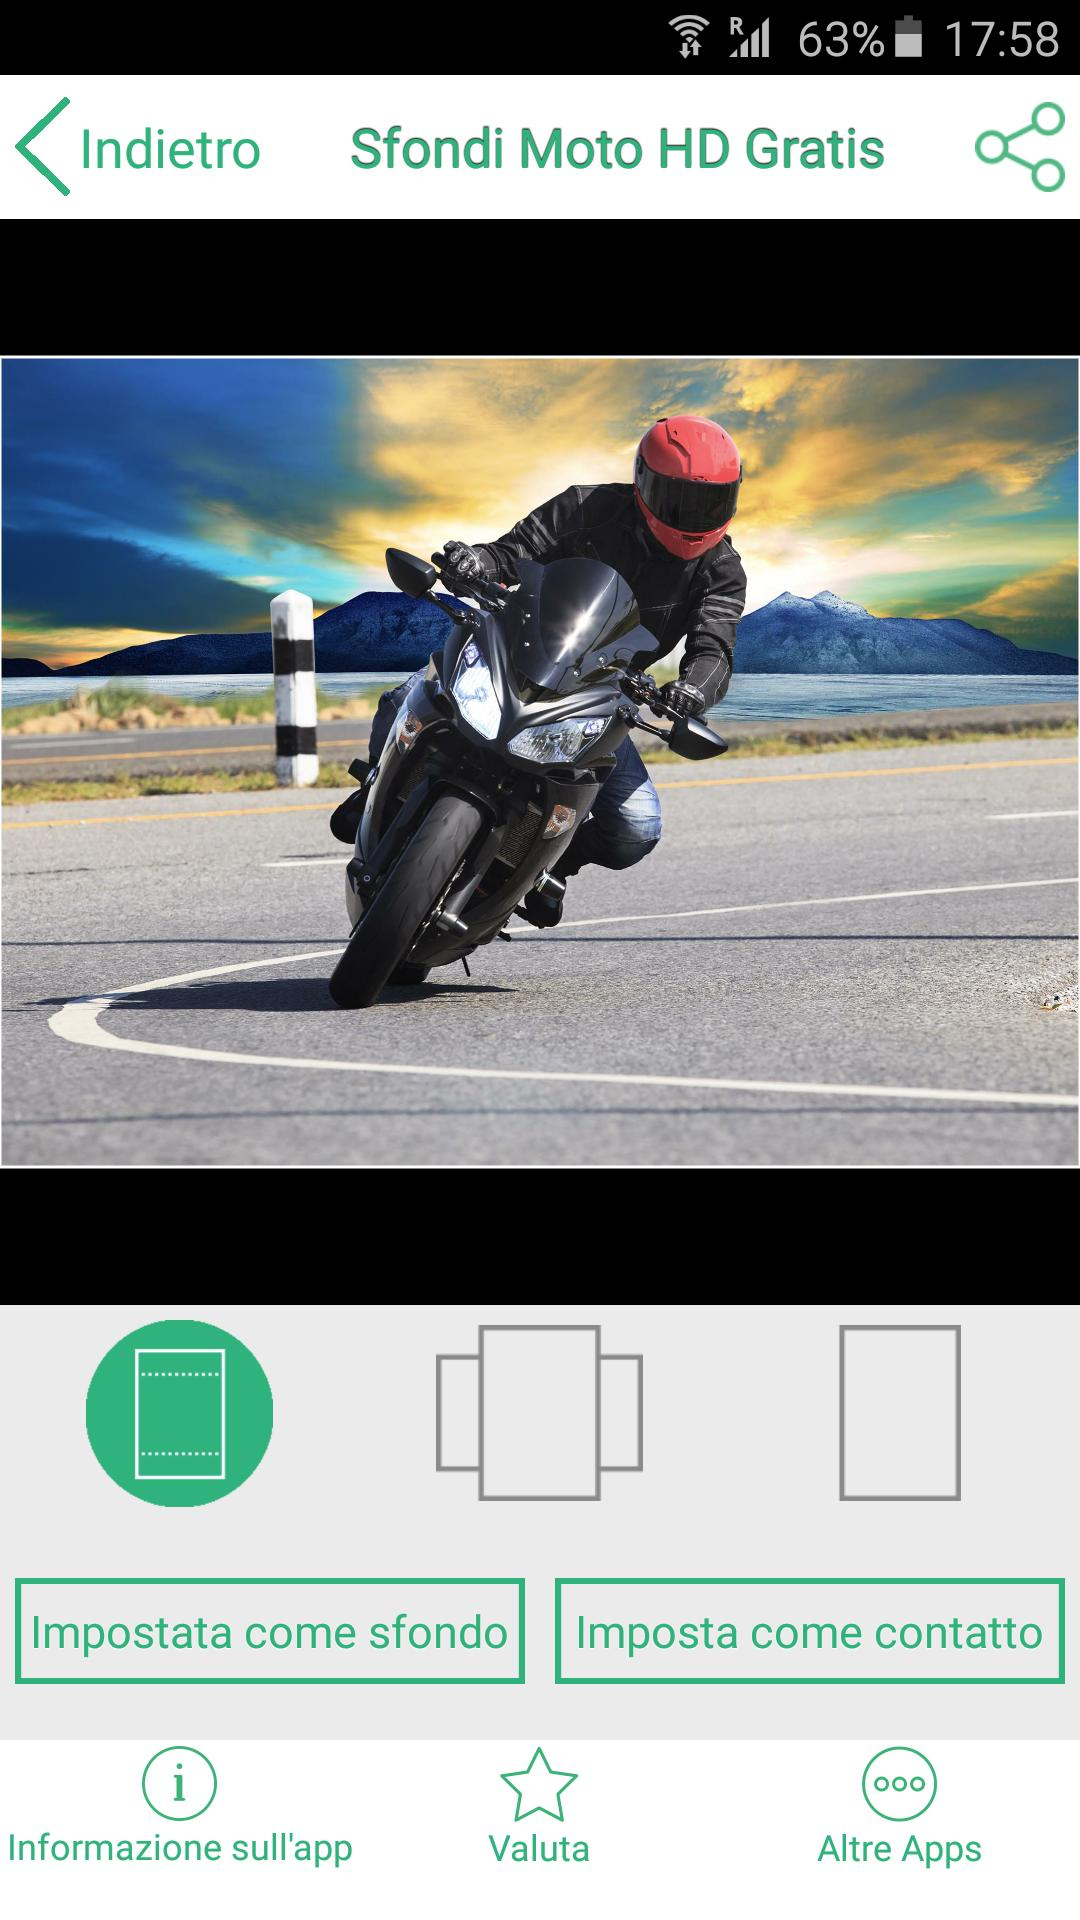 Sfondi Moto Hd Gratis For Android Apk Download